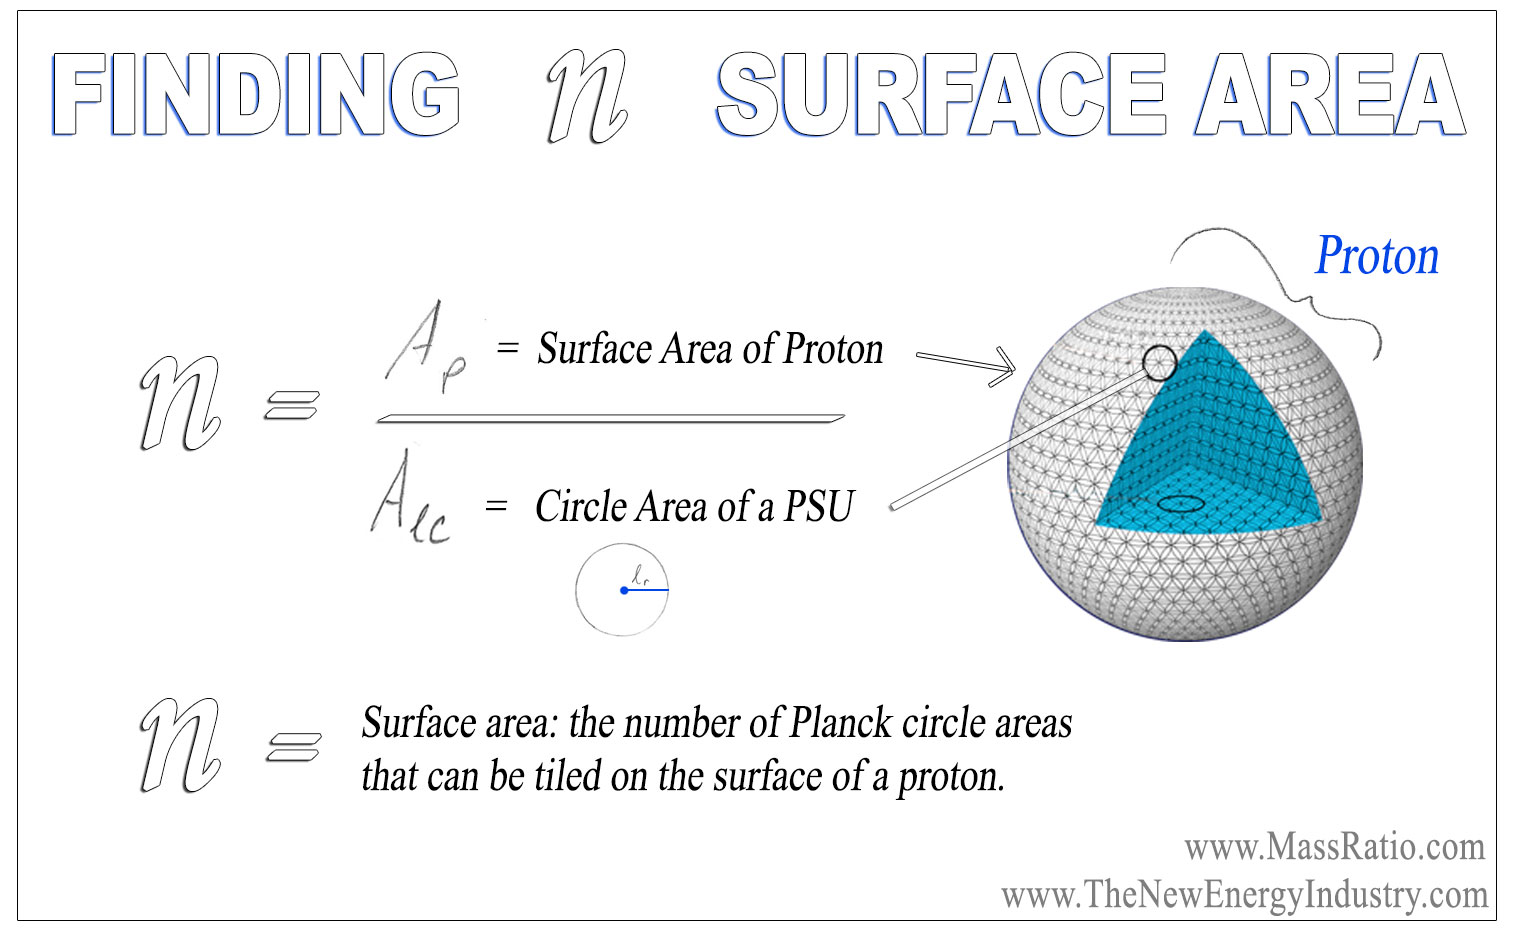 How To Find The Surface Area Of A Circle With The Diameter